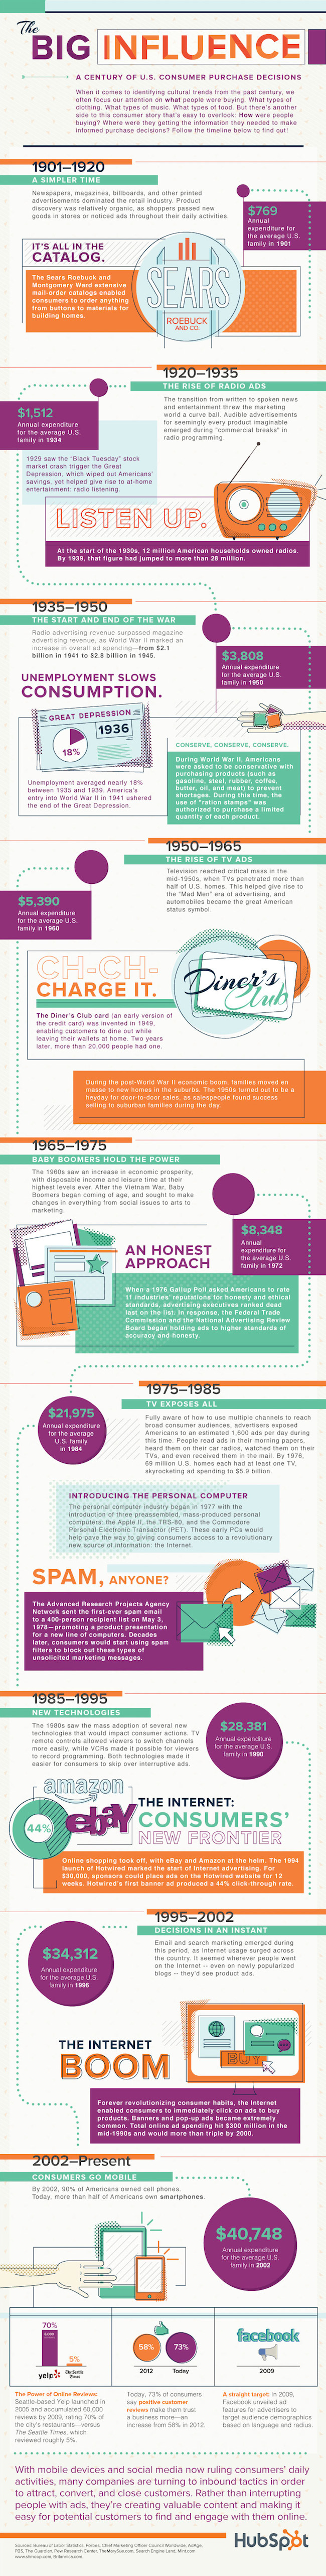 How People Buy: Evolution of Consumer Purchasing